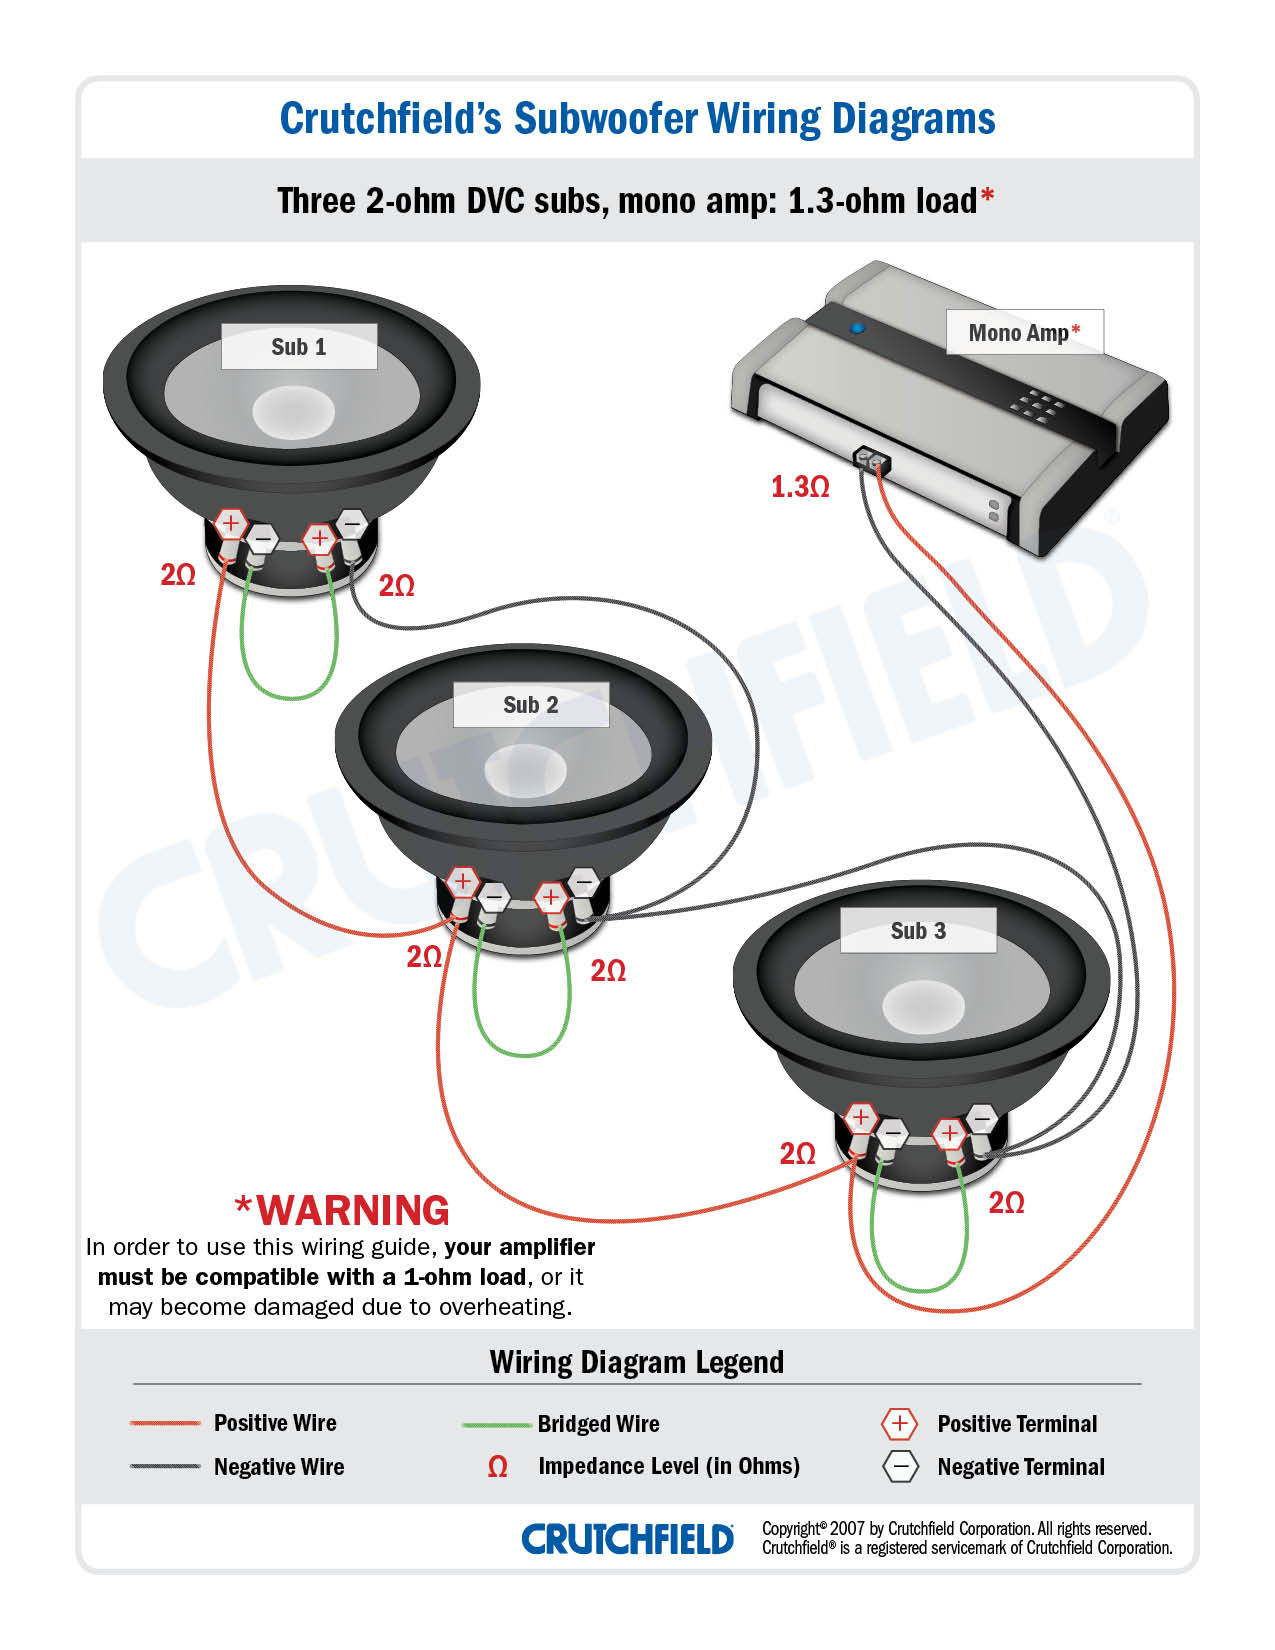 hight resolution of ron three dvc 2 ohm subs get wired to a mono amp capable of driving a 1 ohm load